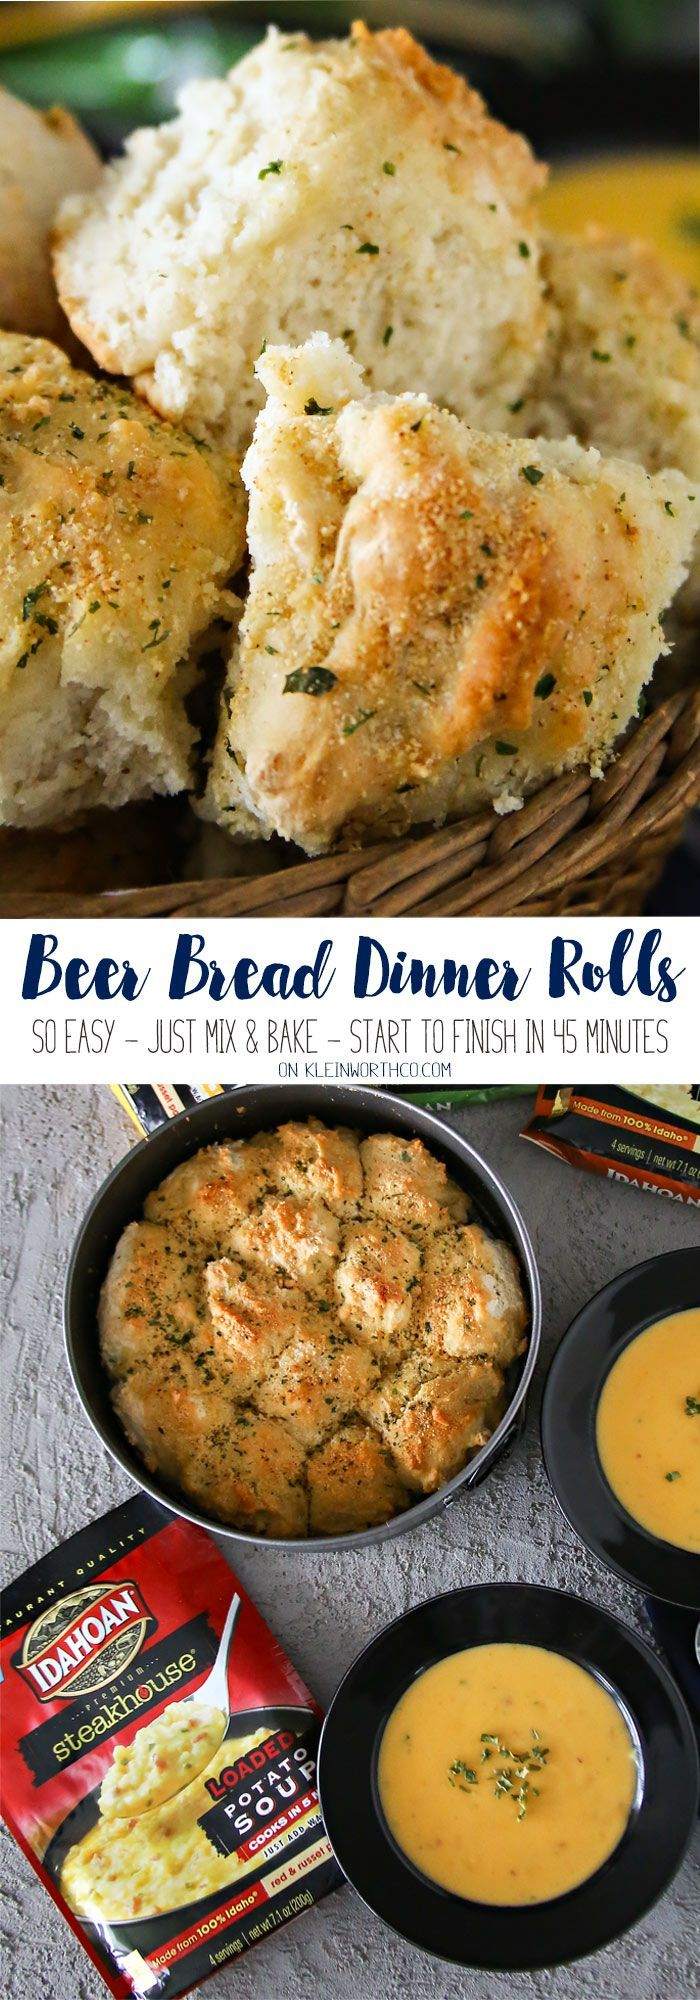 Beer Bread Dinner Rolls are a quick & easy family dinner idea that's ready to eat in just 45 minutes. Pair them with delicious soup! AD #IdahoanSteakhouseSoups via @KleinworthCo @Idahoanfoods